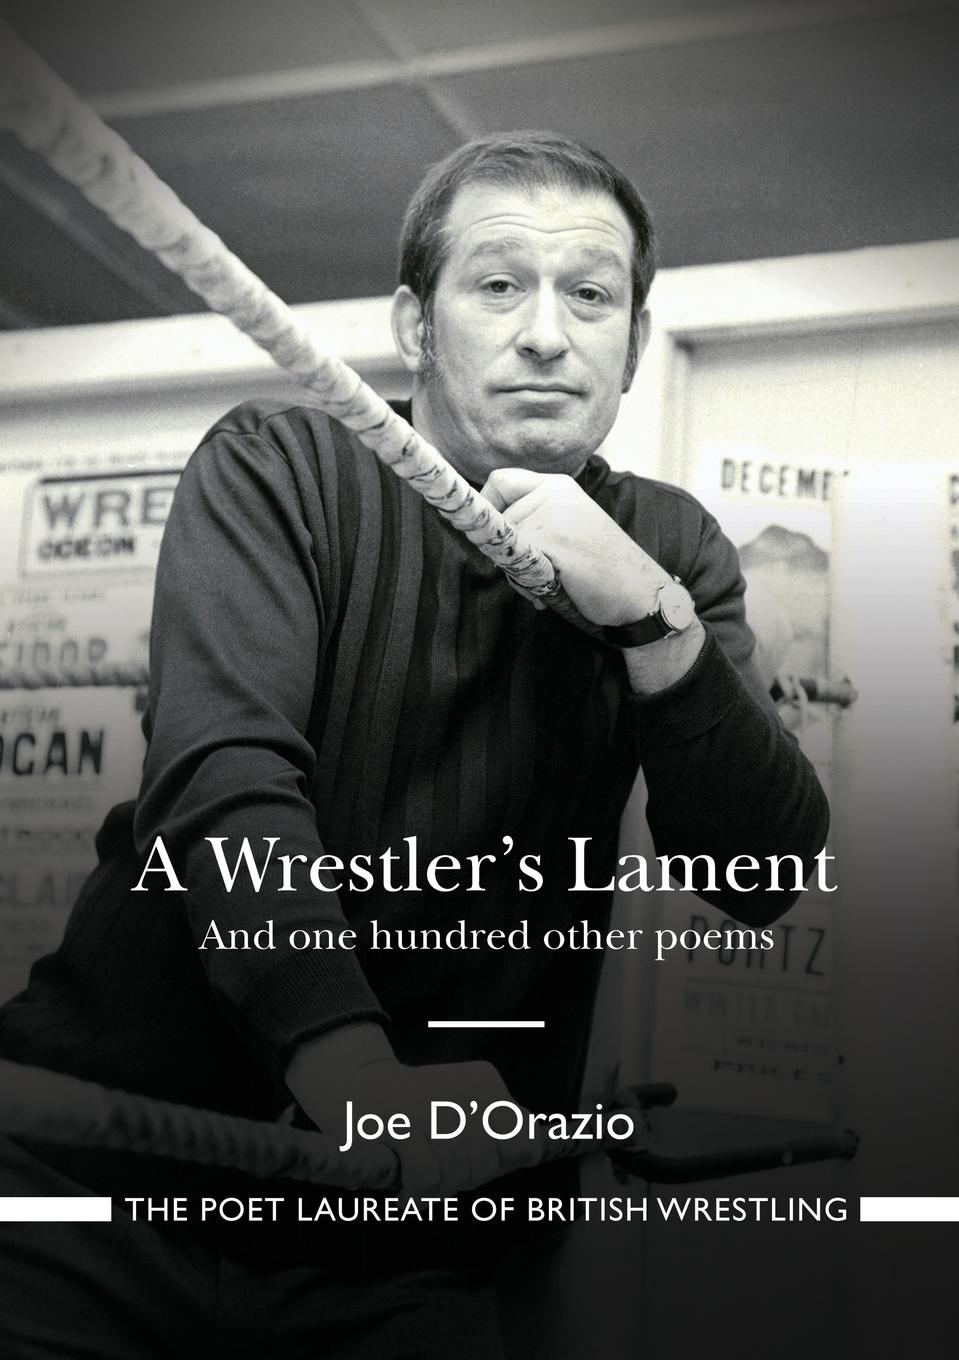 Joe D'Orazio A Wrestler.s Lament. And one hundred other poems cheryl st john joe s wife